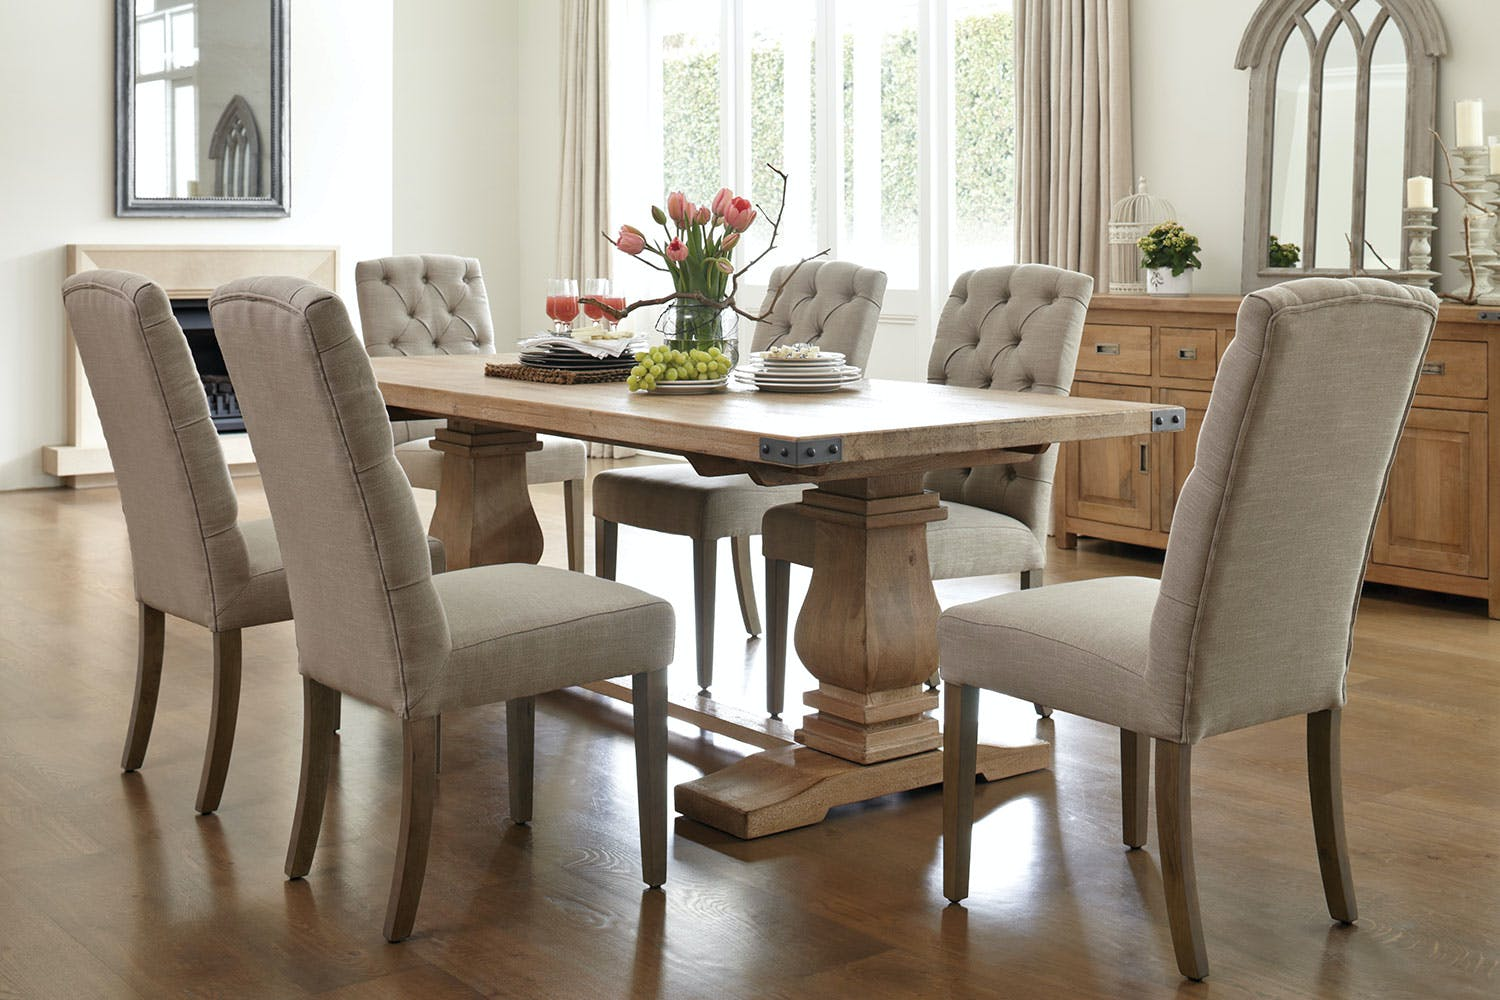 Utah 7 piece dining suite by vivin harvey norman new zealand for Dining room suites images